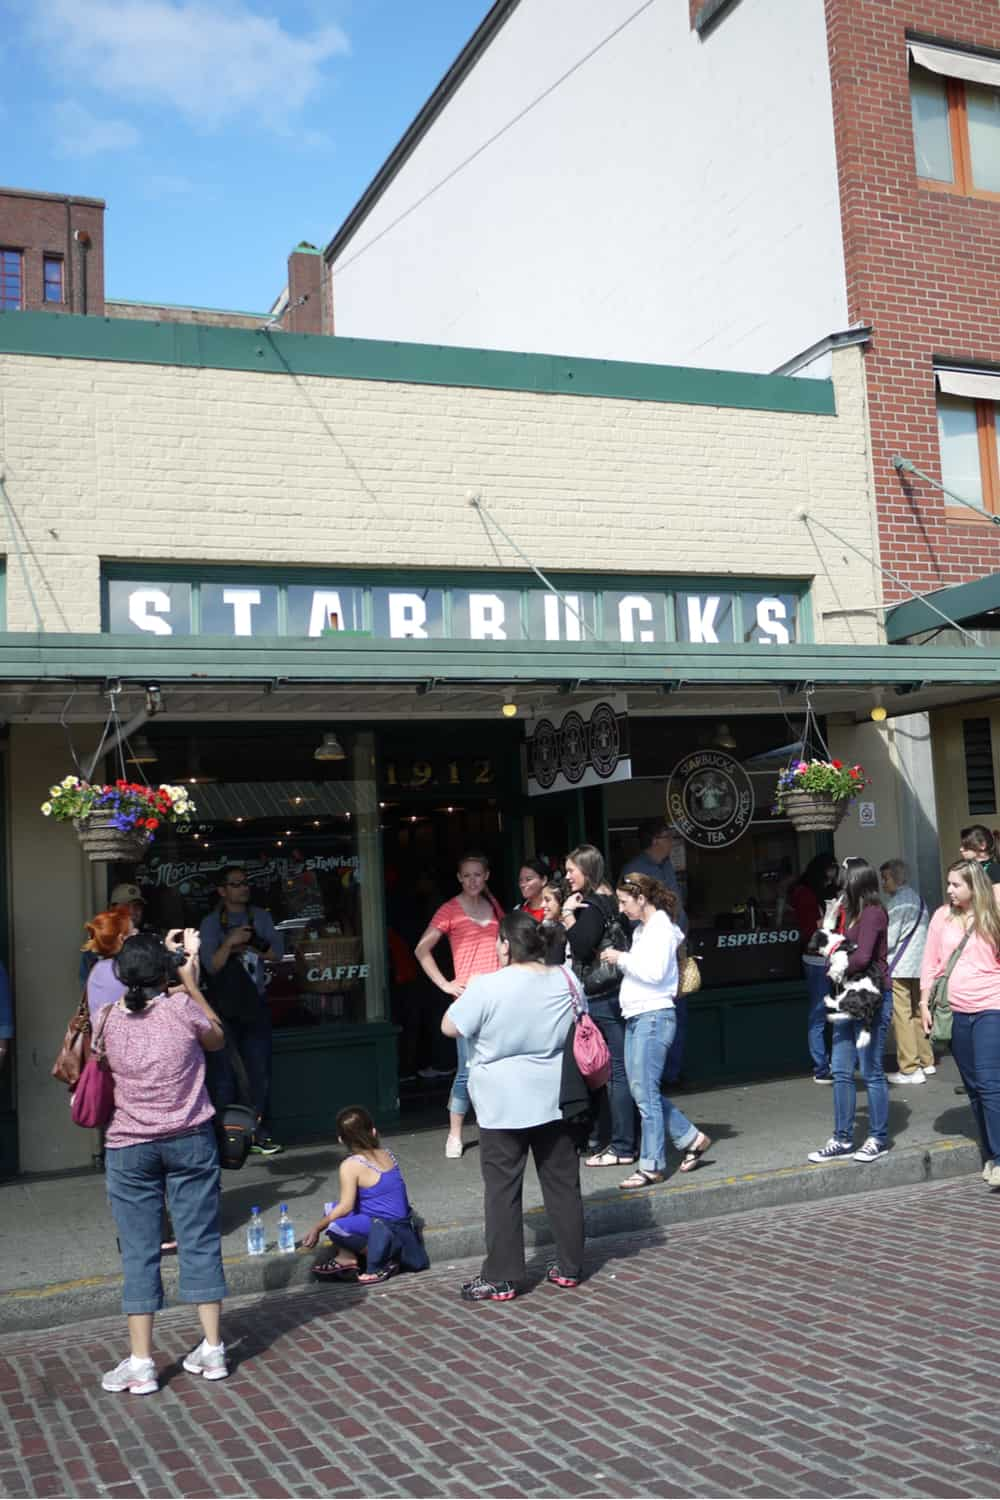 The first Starbucks opened in Seattle in 1971